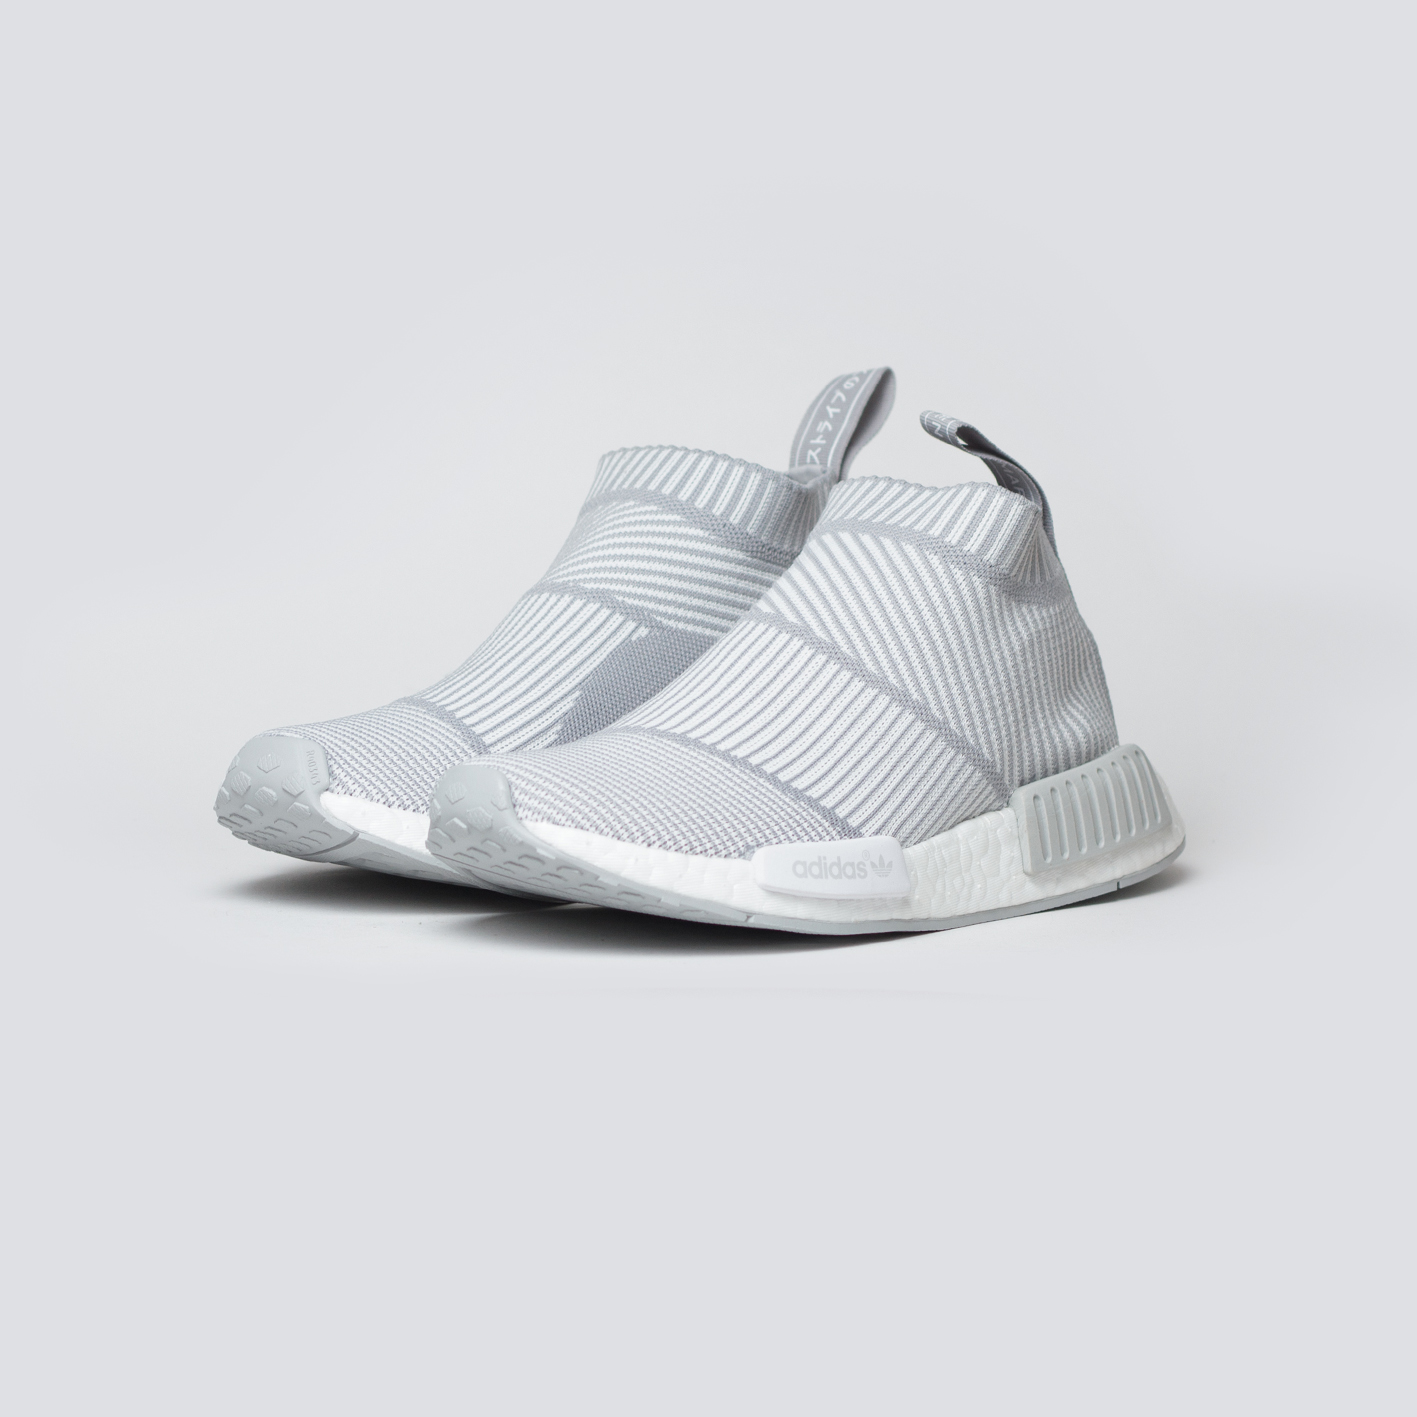 ADIDAS NMD CITY SOCK SNEAKERS MILANO STORE 2